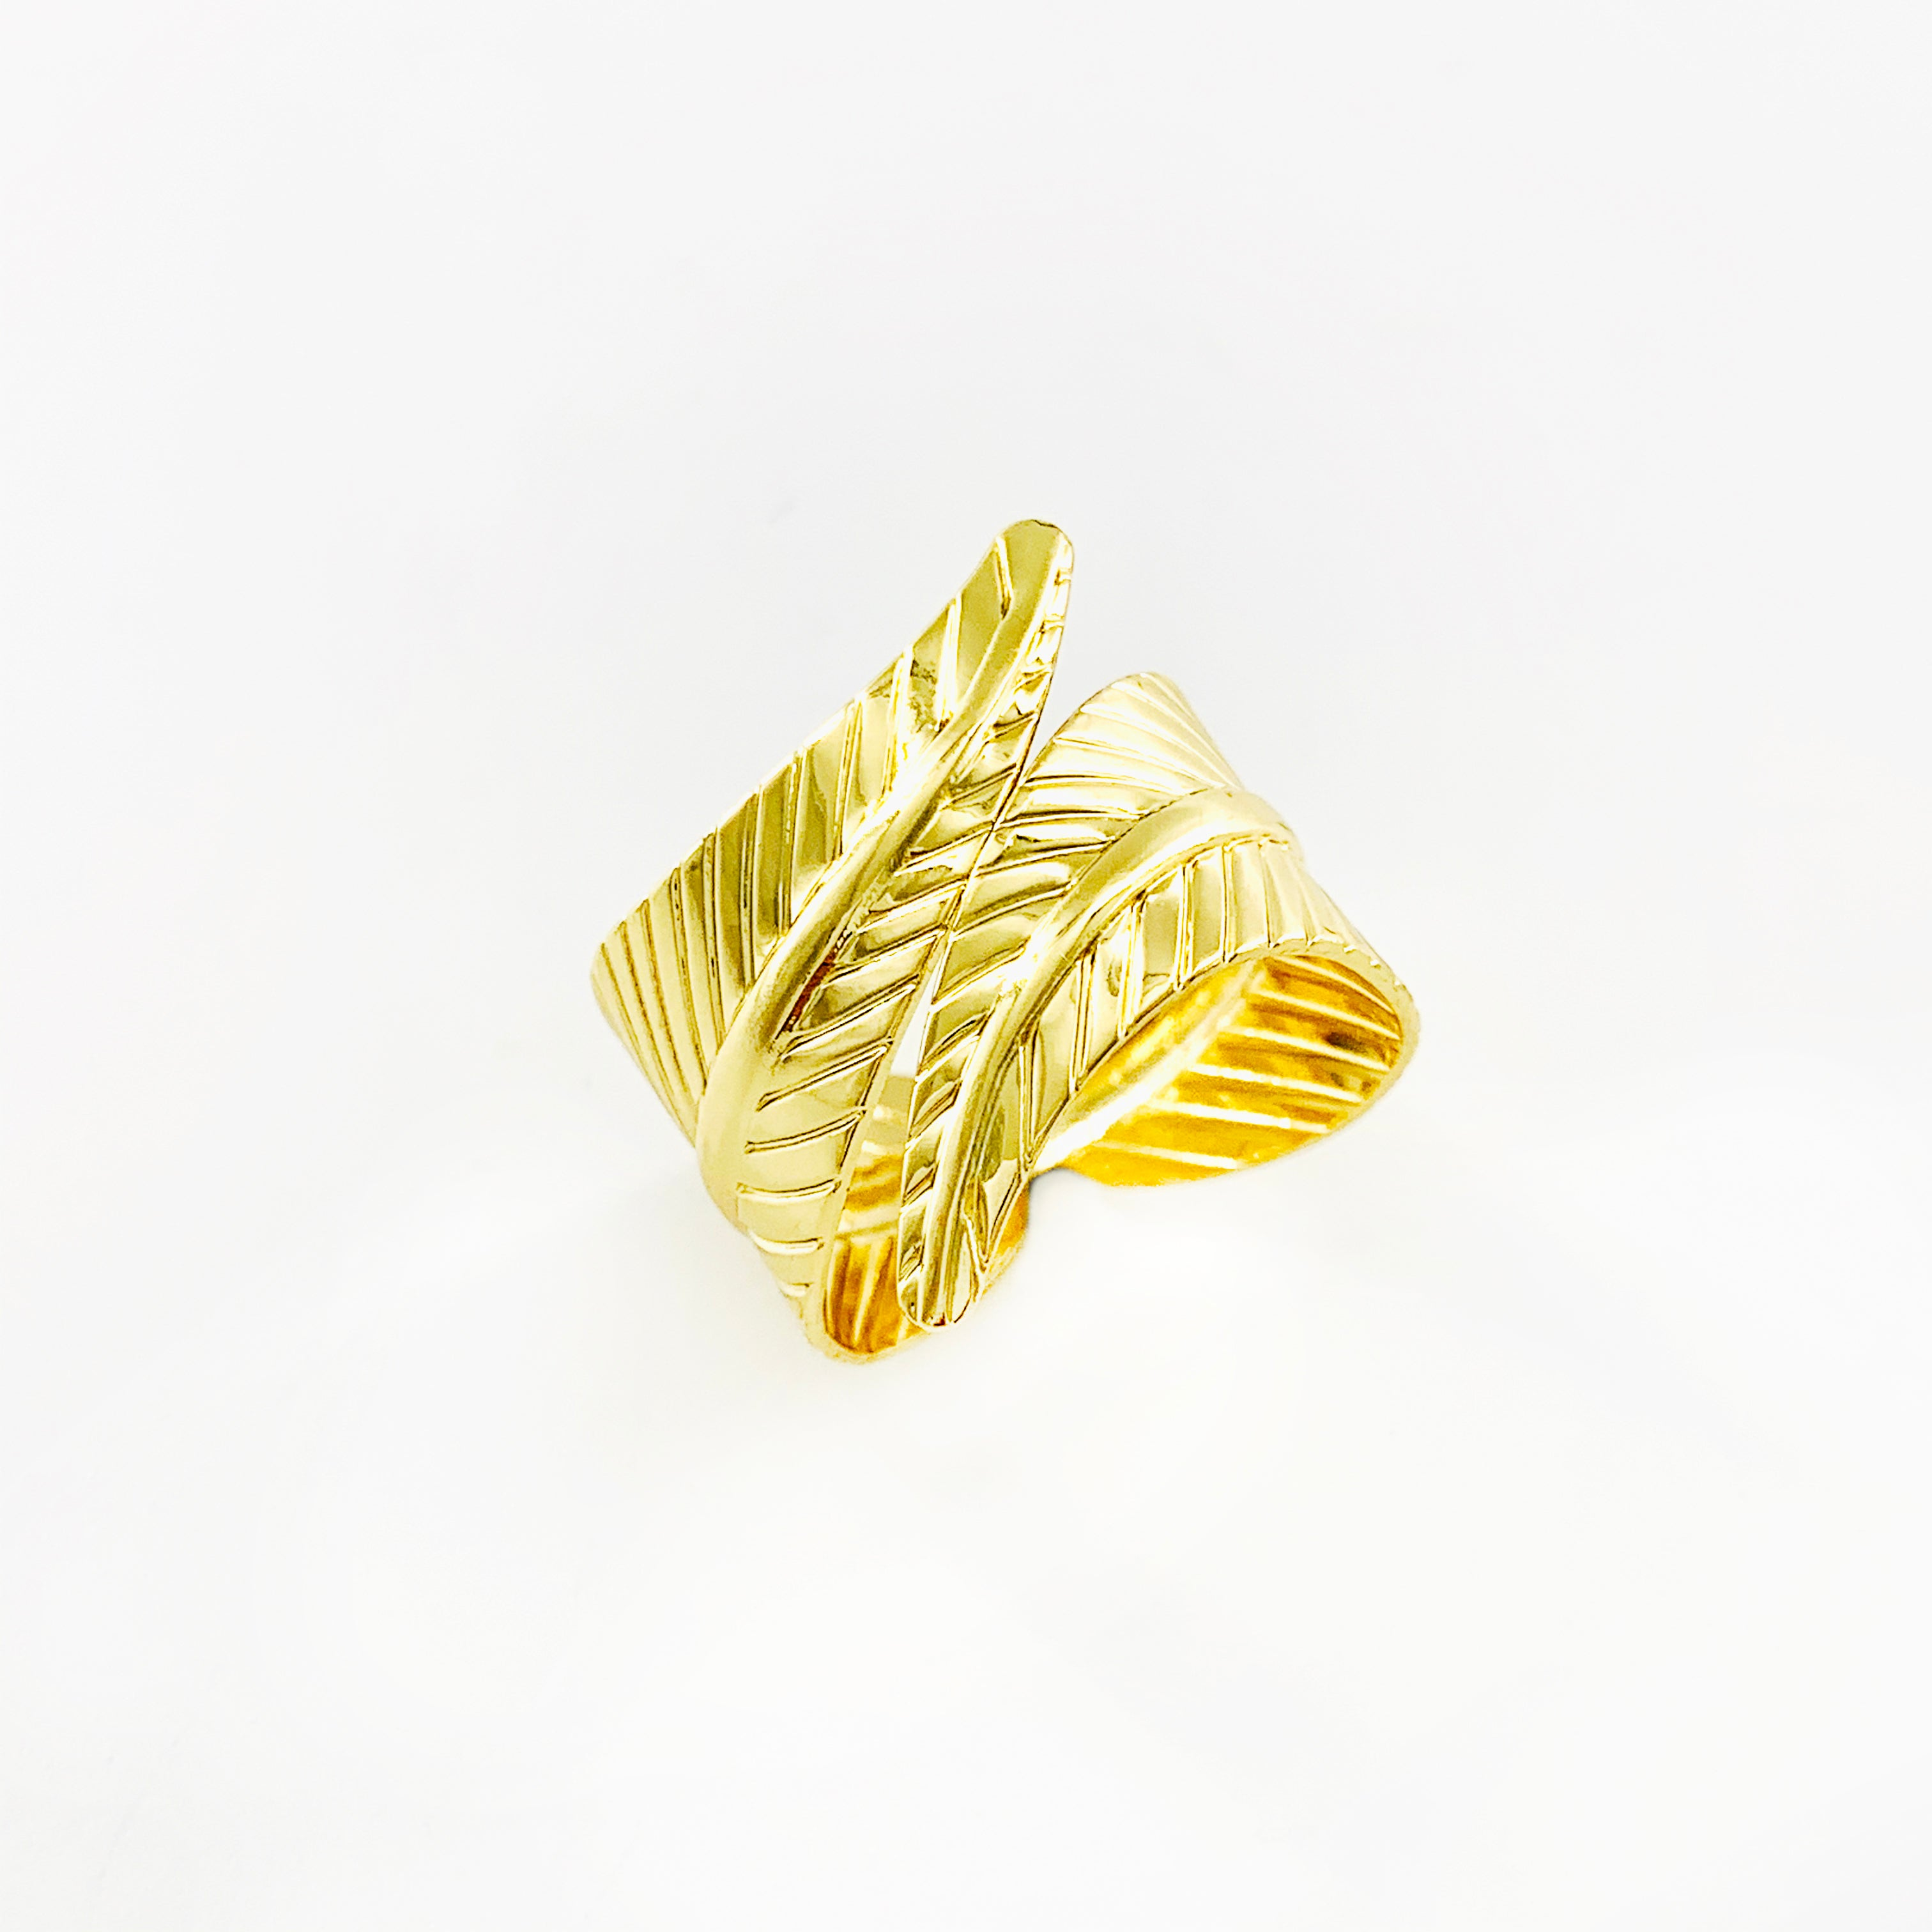 Wraparound gold leaf ring